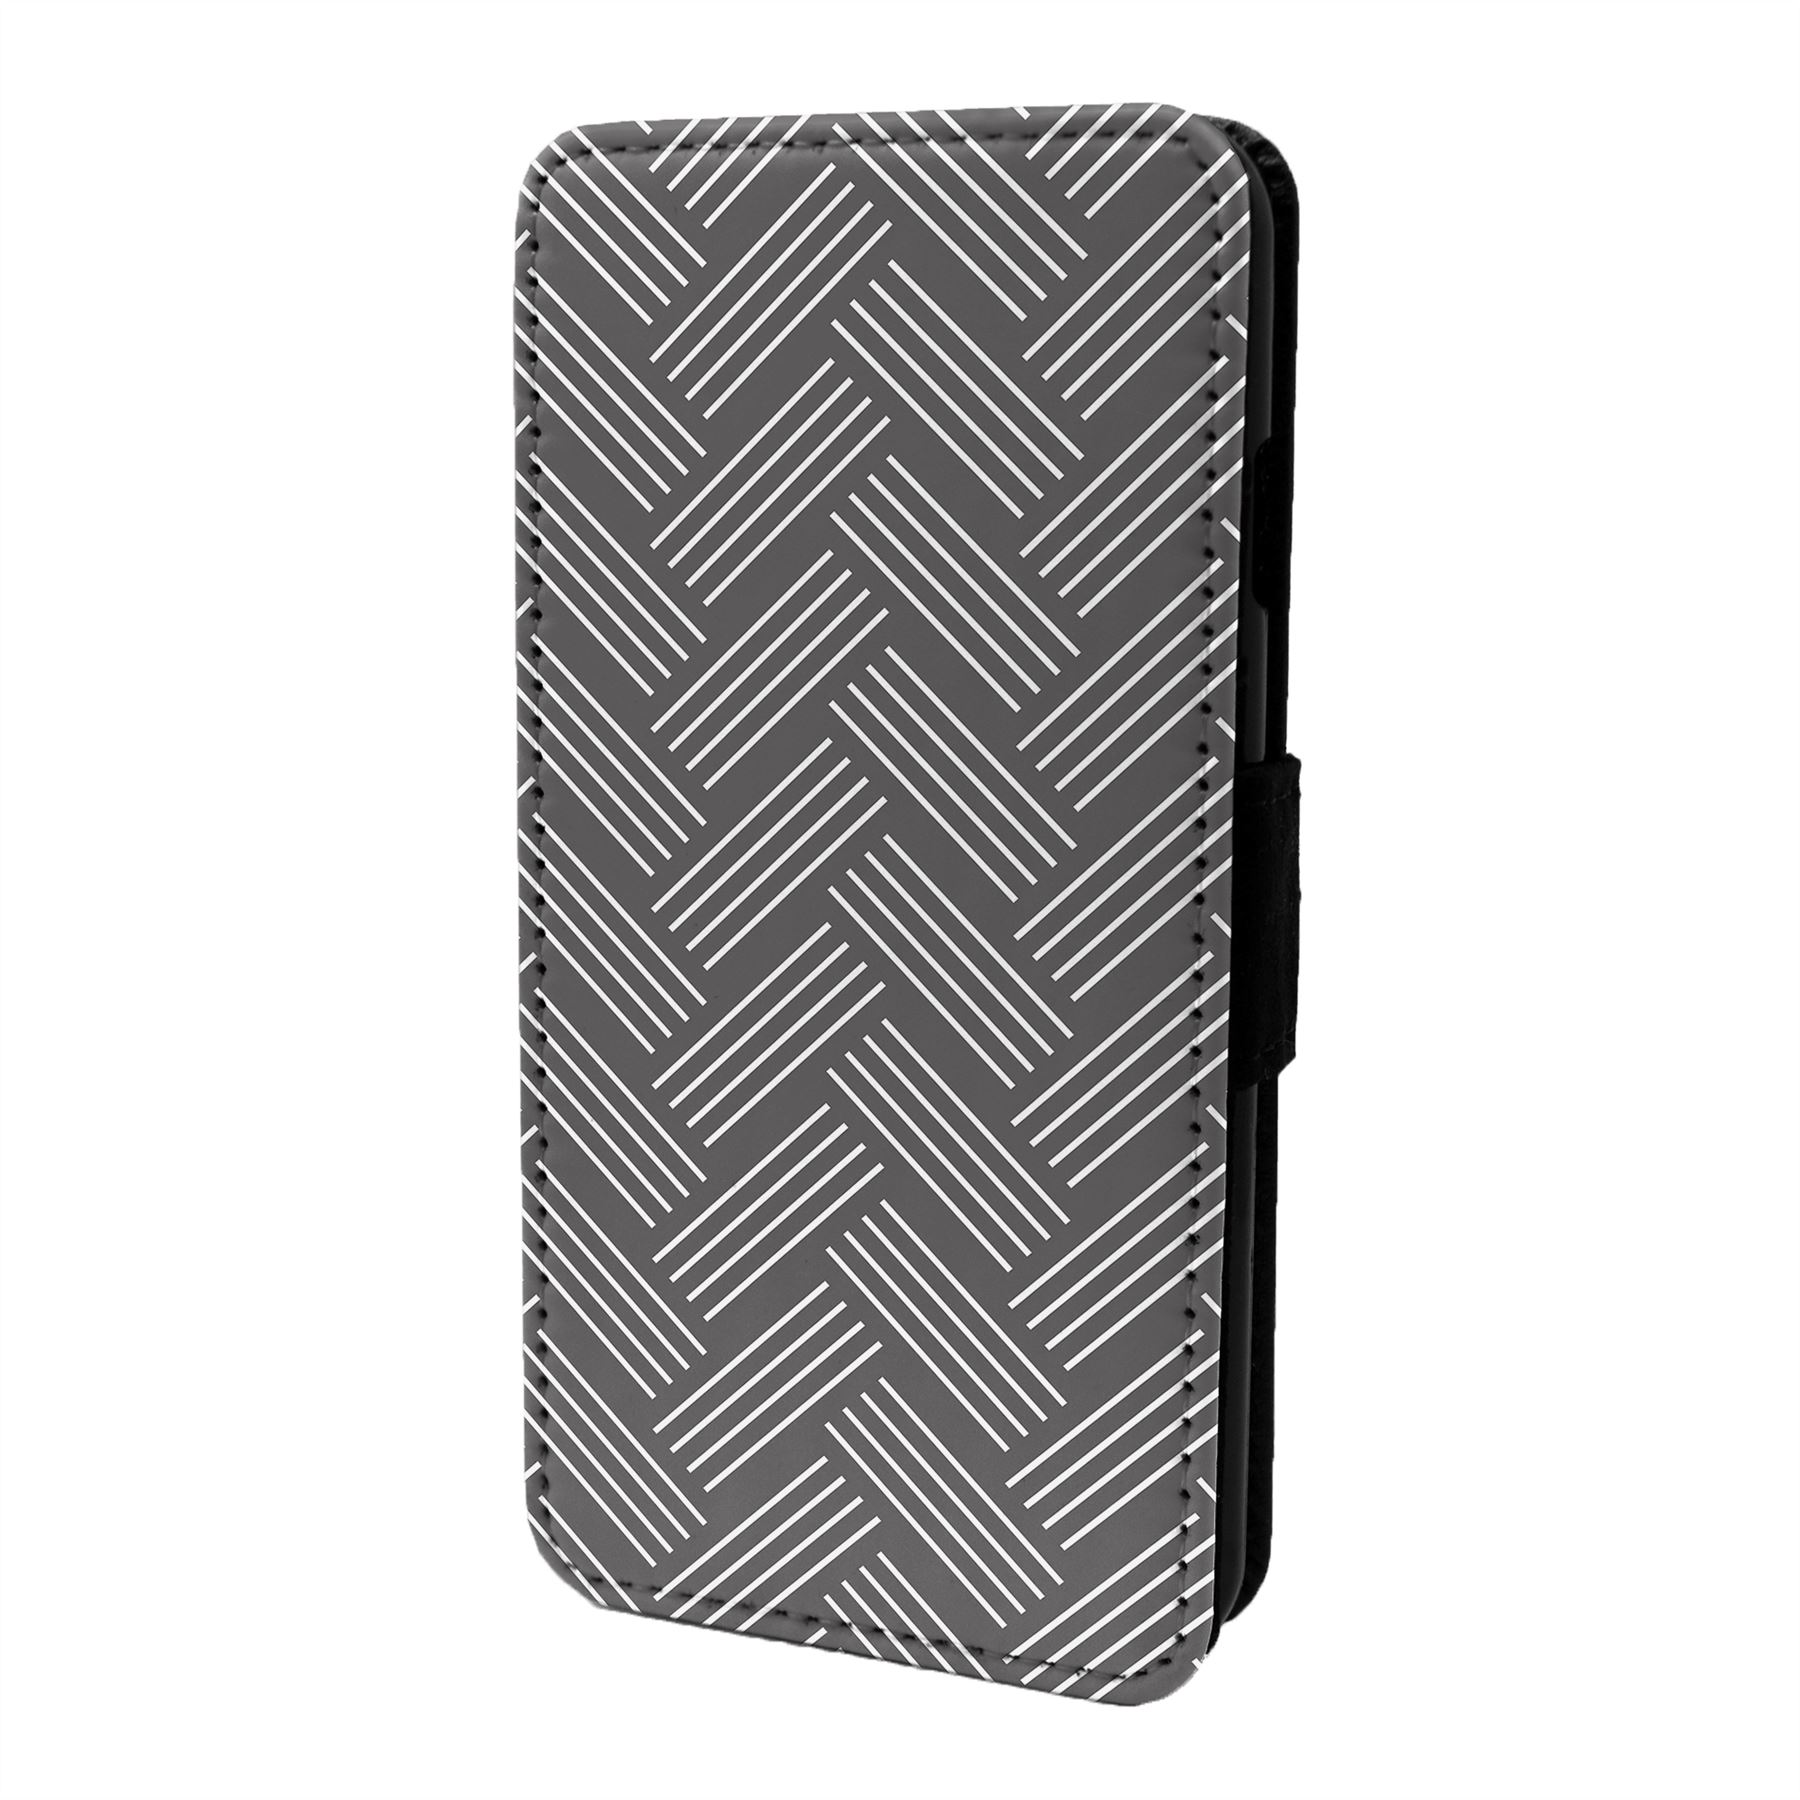 Espiguilla-Chevron-Estampado-Funda-Libro-para-Telefono-Movil-S6794